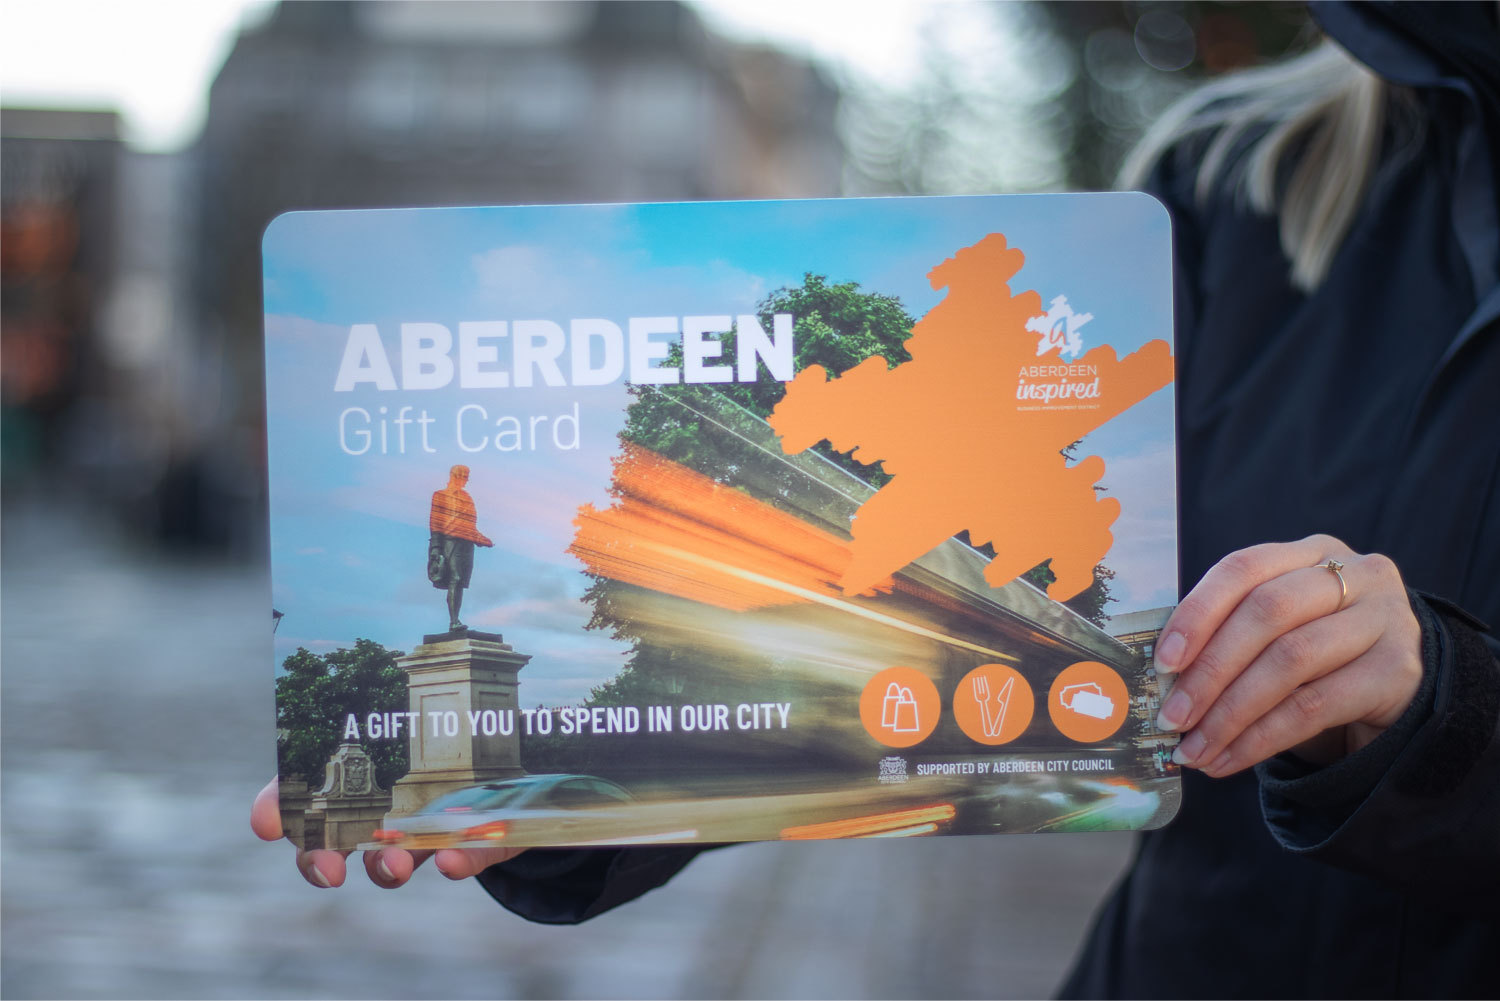 Aberdeen Gift Card drives city economic recovery